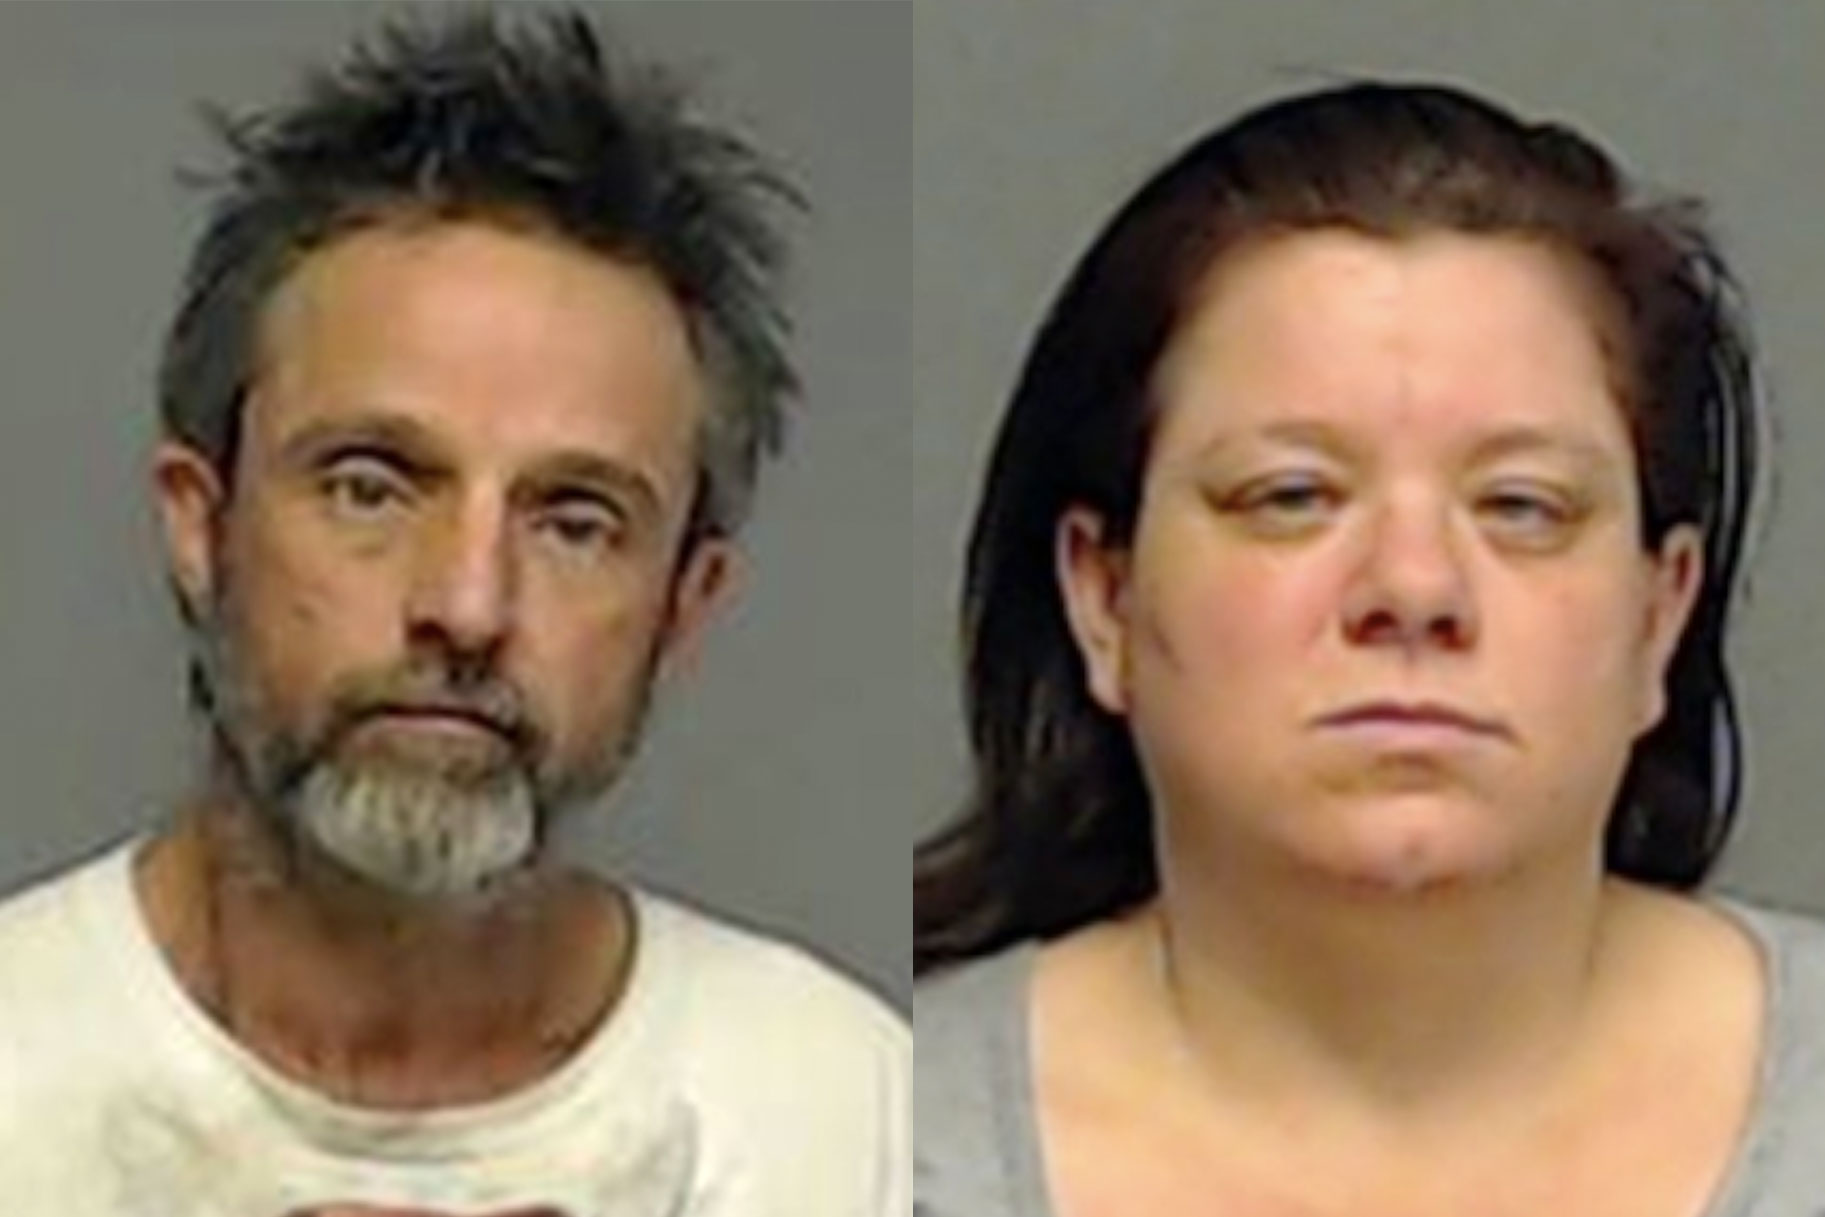 'He's A Bleeder:' Detectives Dupe Vengeful Wife With Bloody Fake Murder Scene